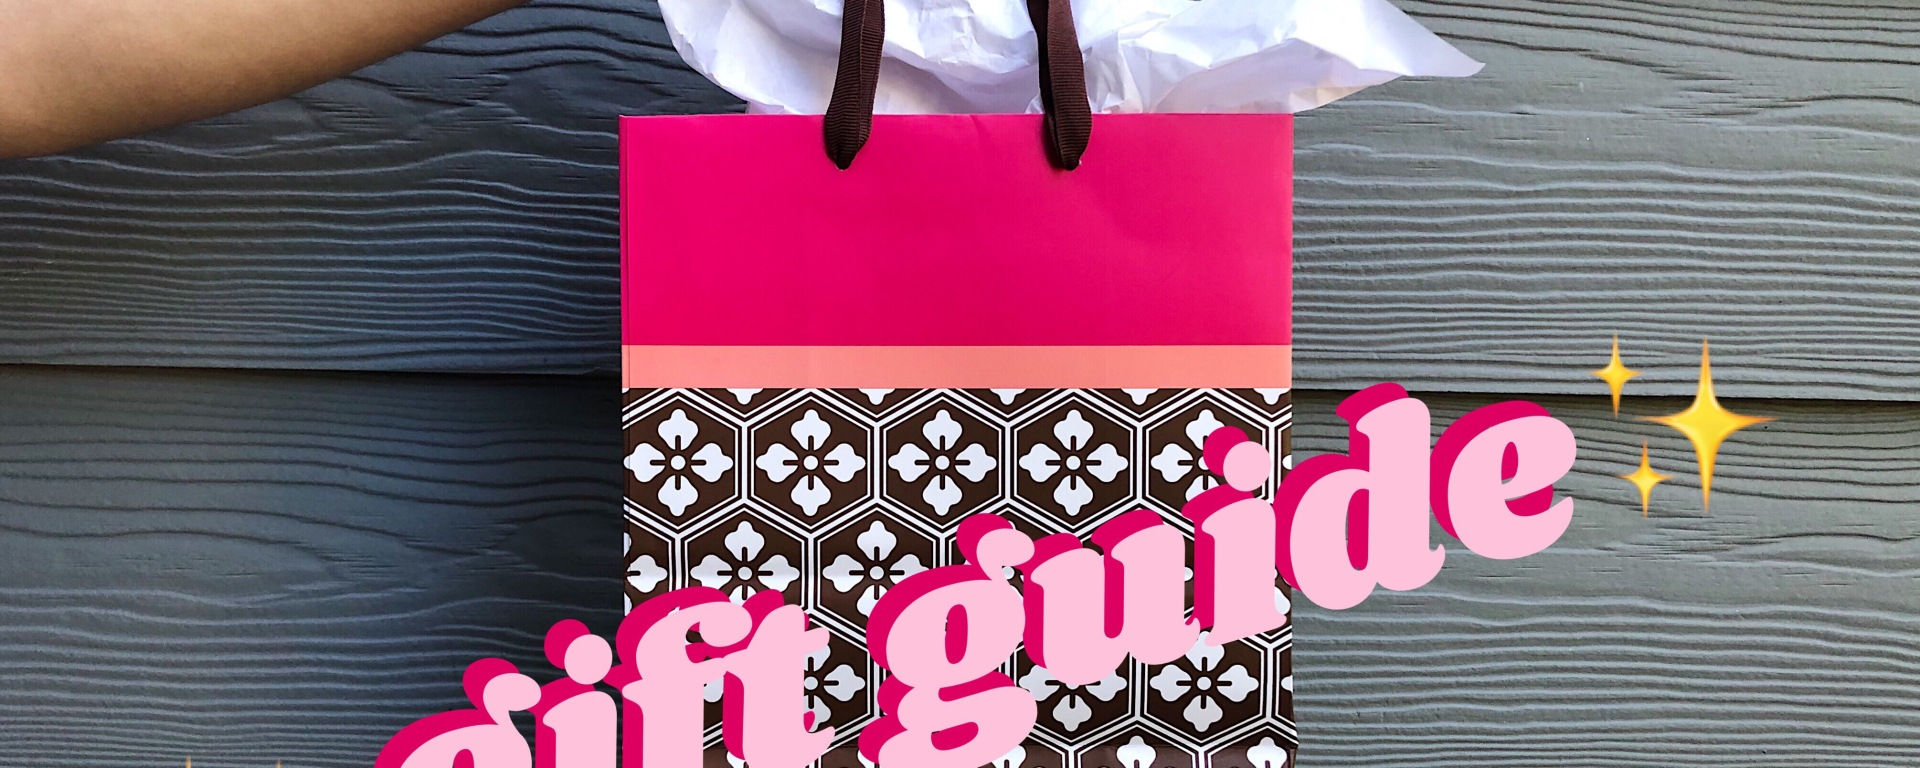 The image features a hand holding a gift bag in front of a grayish/blue wall. The upper part of the gift bag has a pink trim with a thinner peach trim right below.